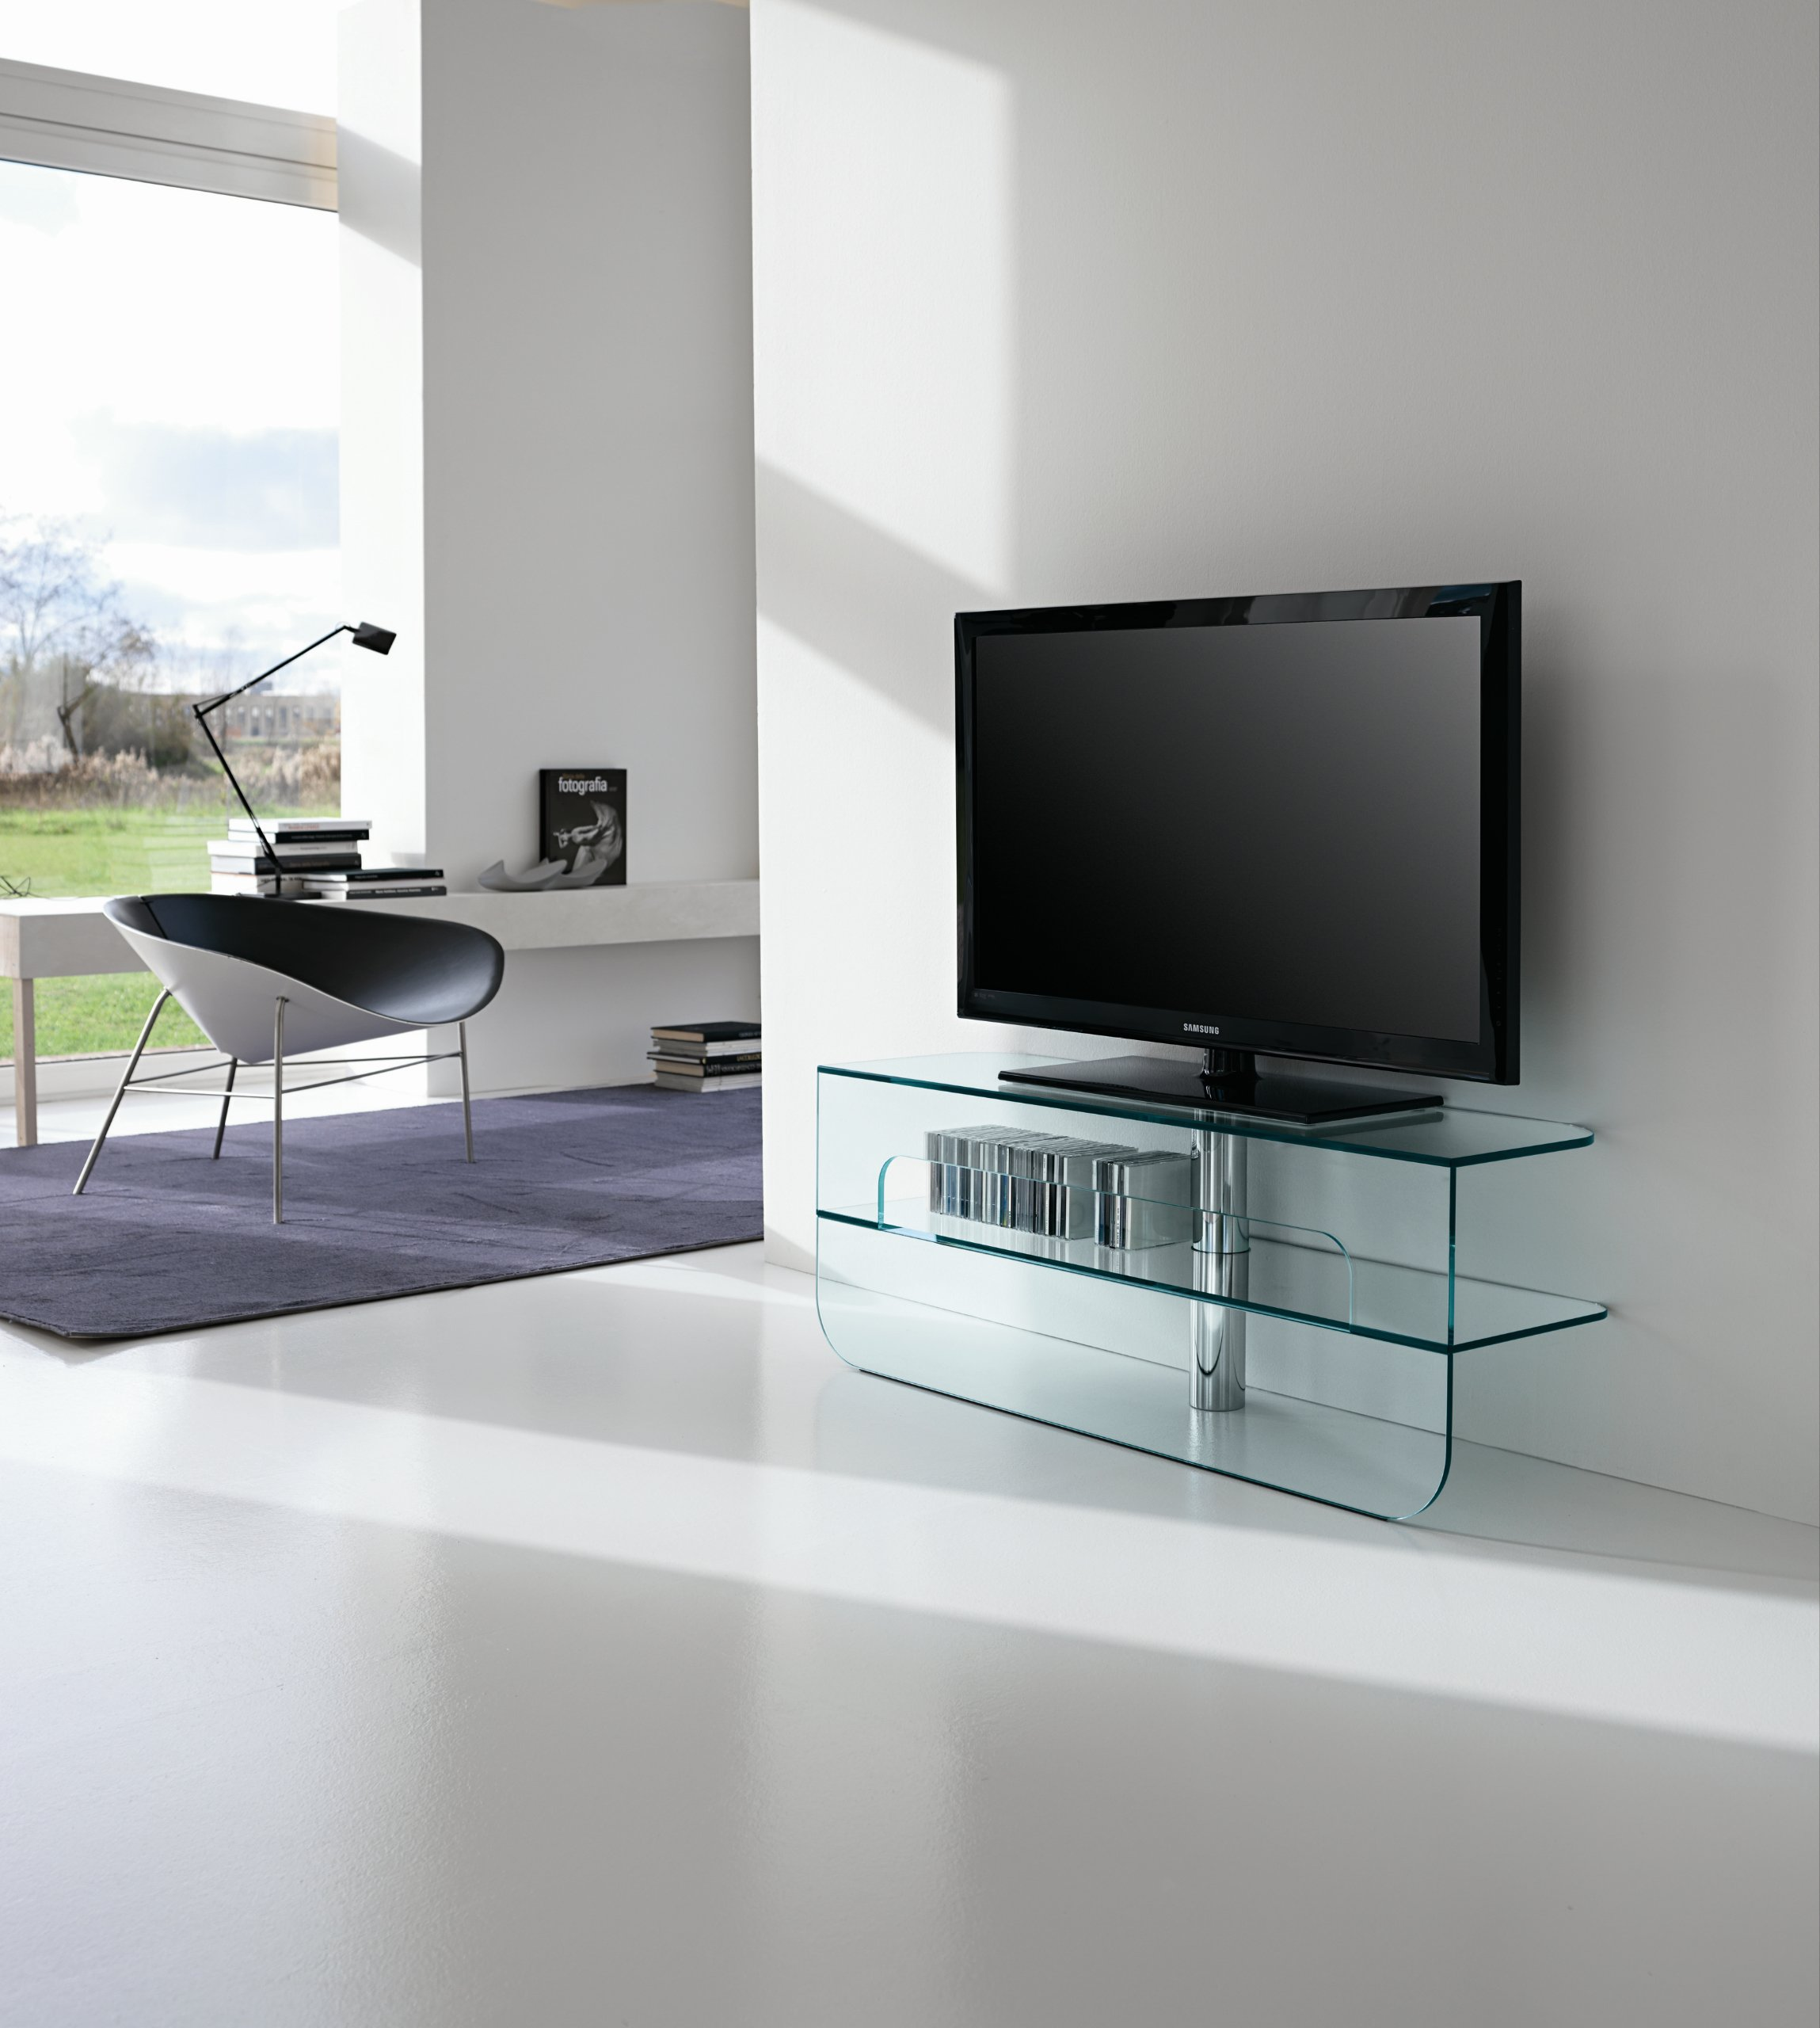 meuble tv bas en verre plasmatik by tonelli design design karim rashid - Meuble Tv En Verre Design